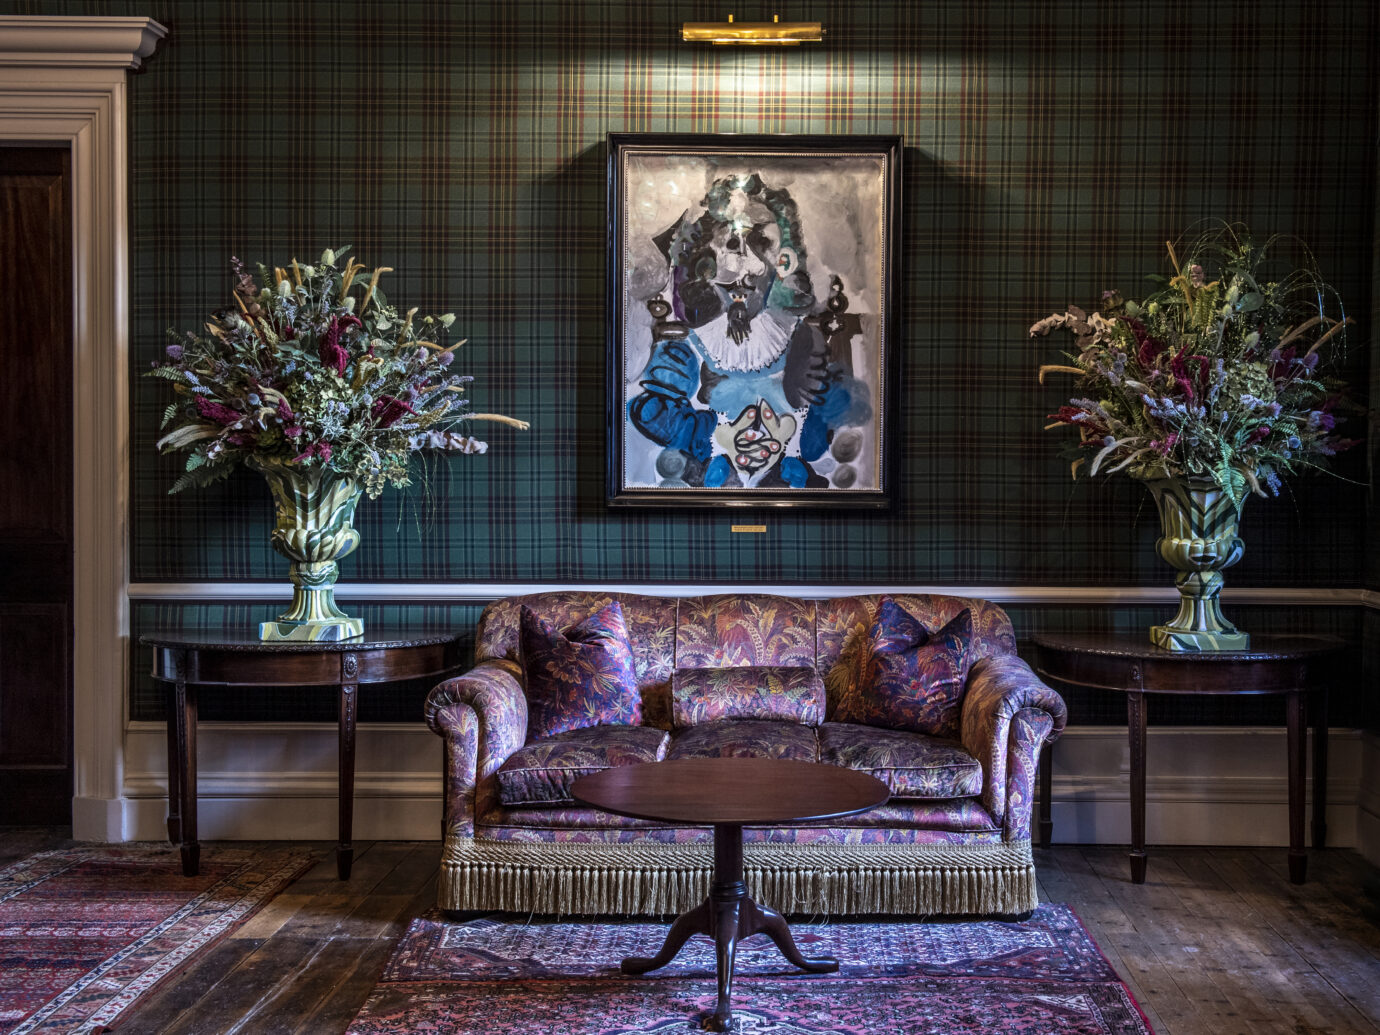 Lounge at The Fife Arms hotel